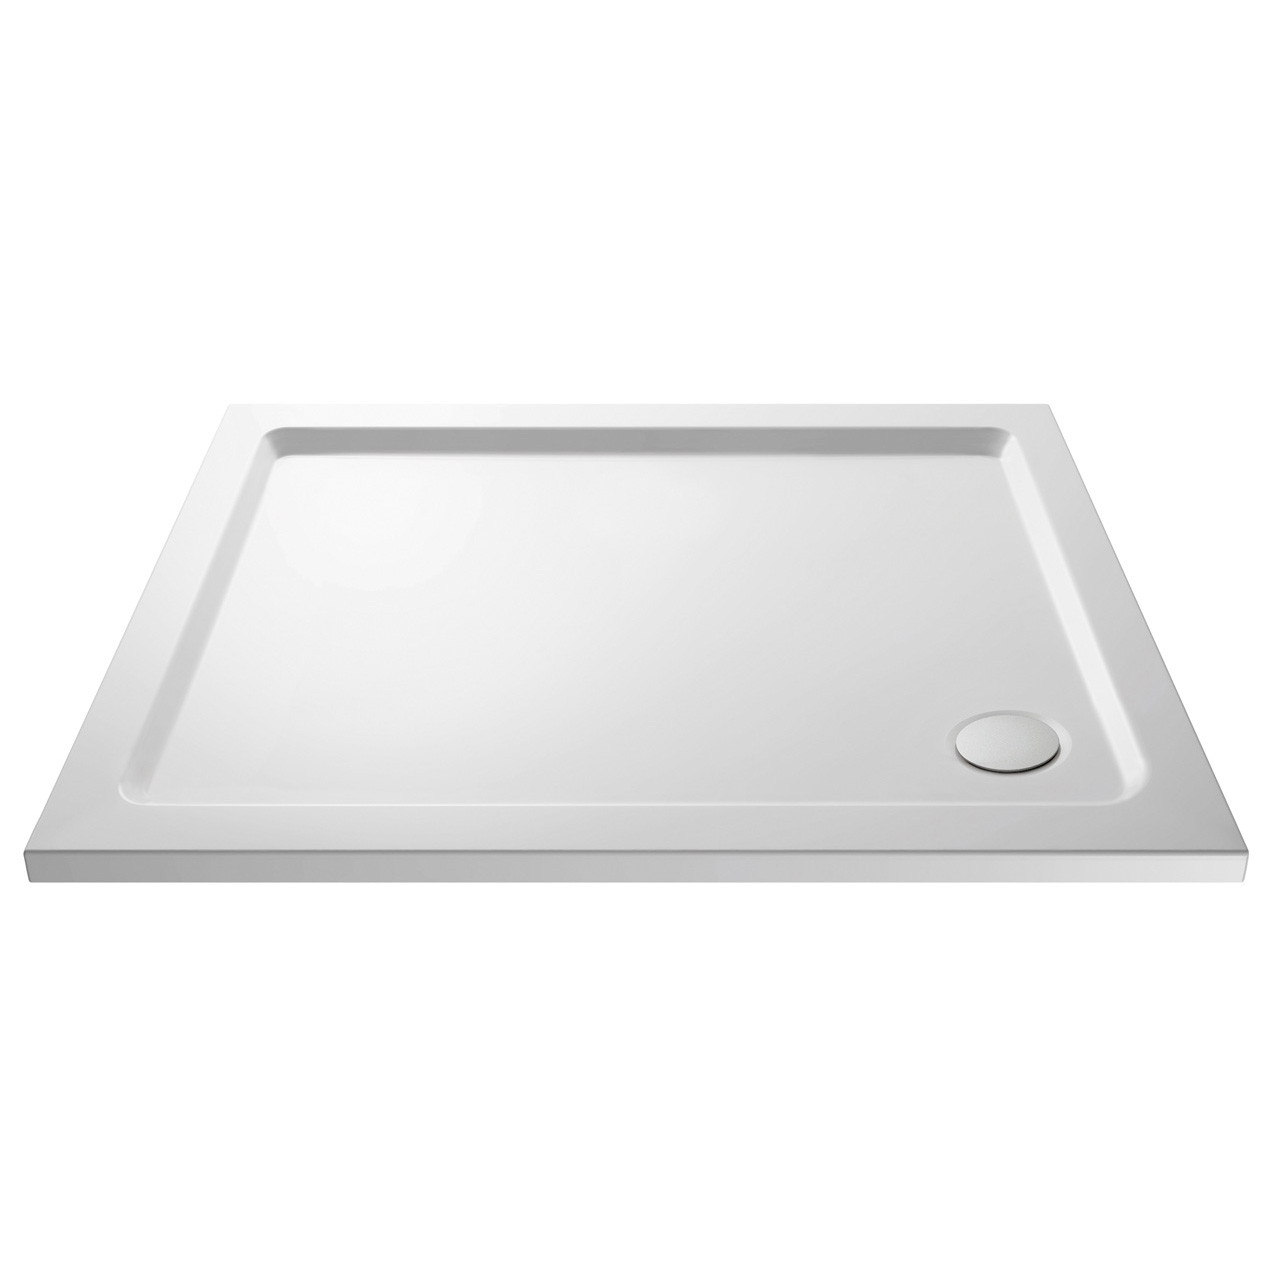 Nuie Pearlstone 1000mm x 760mm Rectangular Shower Tray with Corner Waste - NTP012